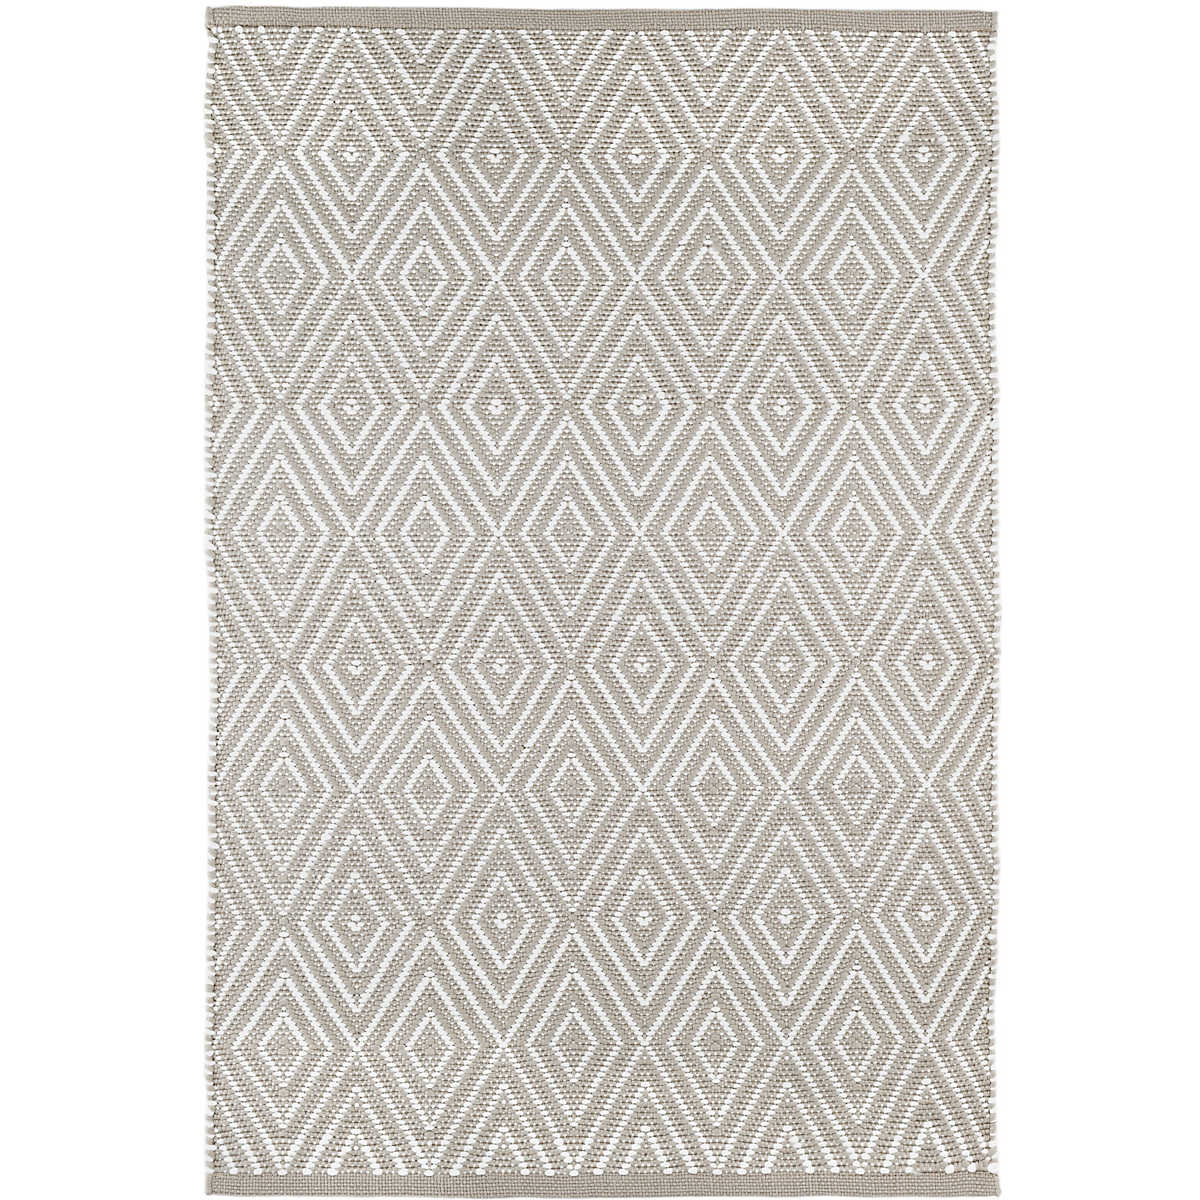 Diamond Platinum/White Indoor/Outdoor Rug | Dash & Albert